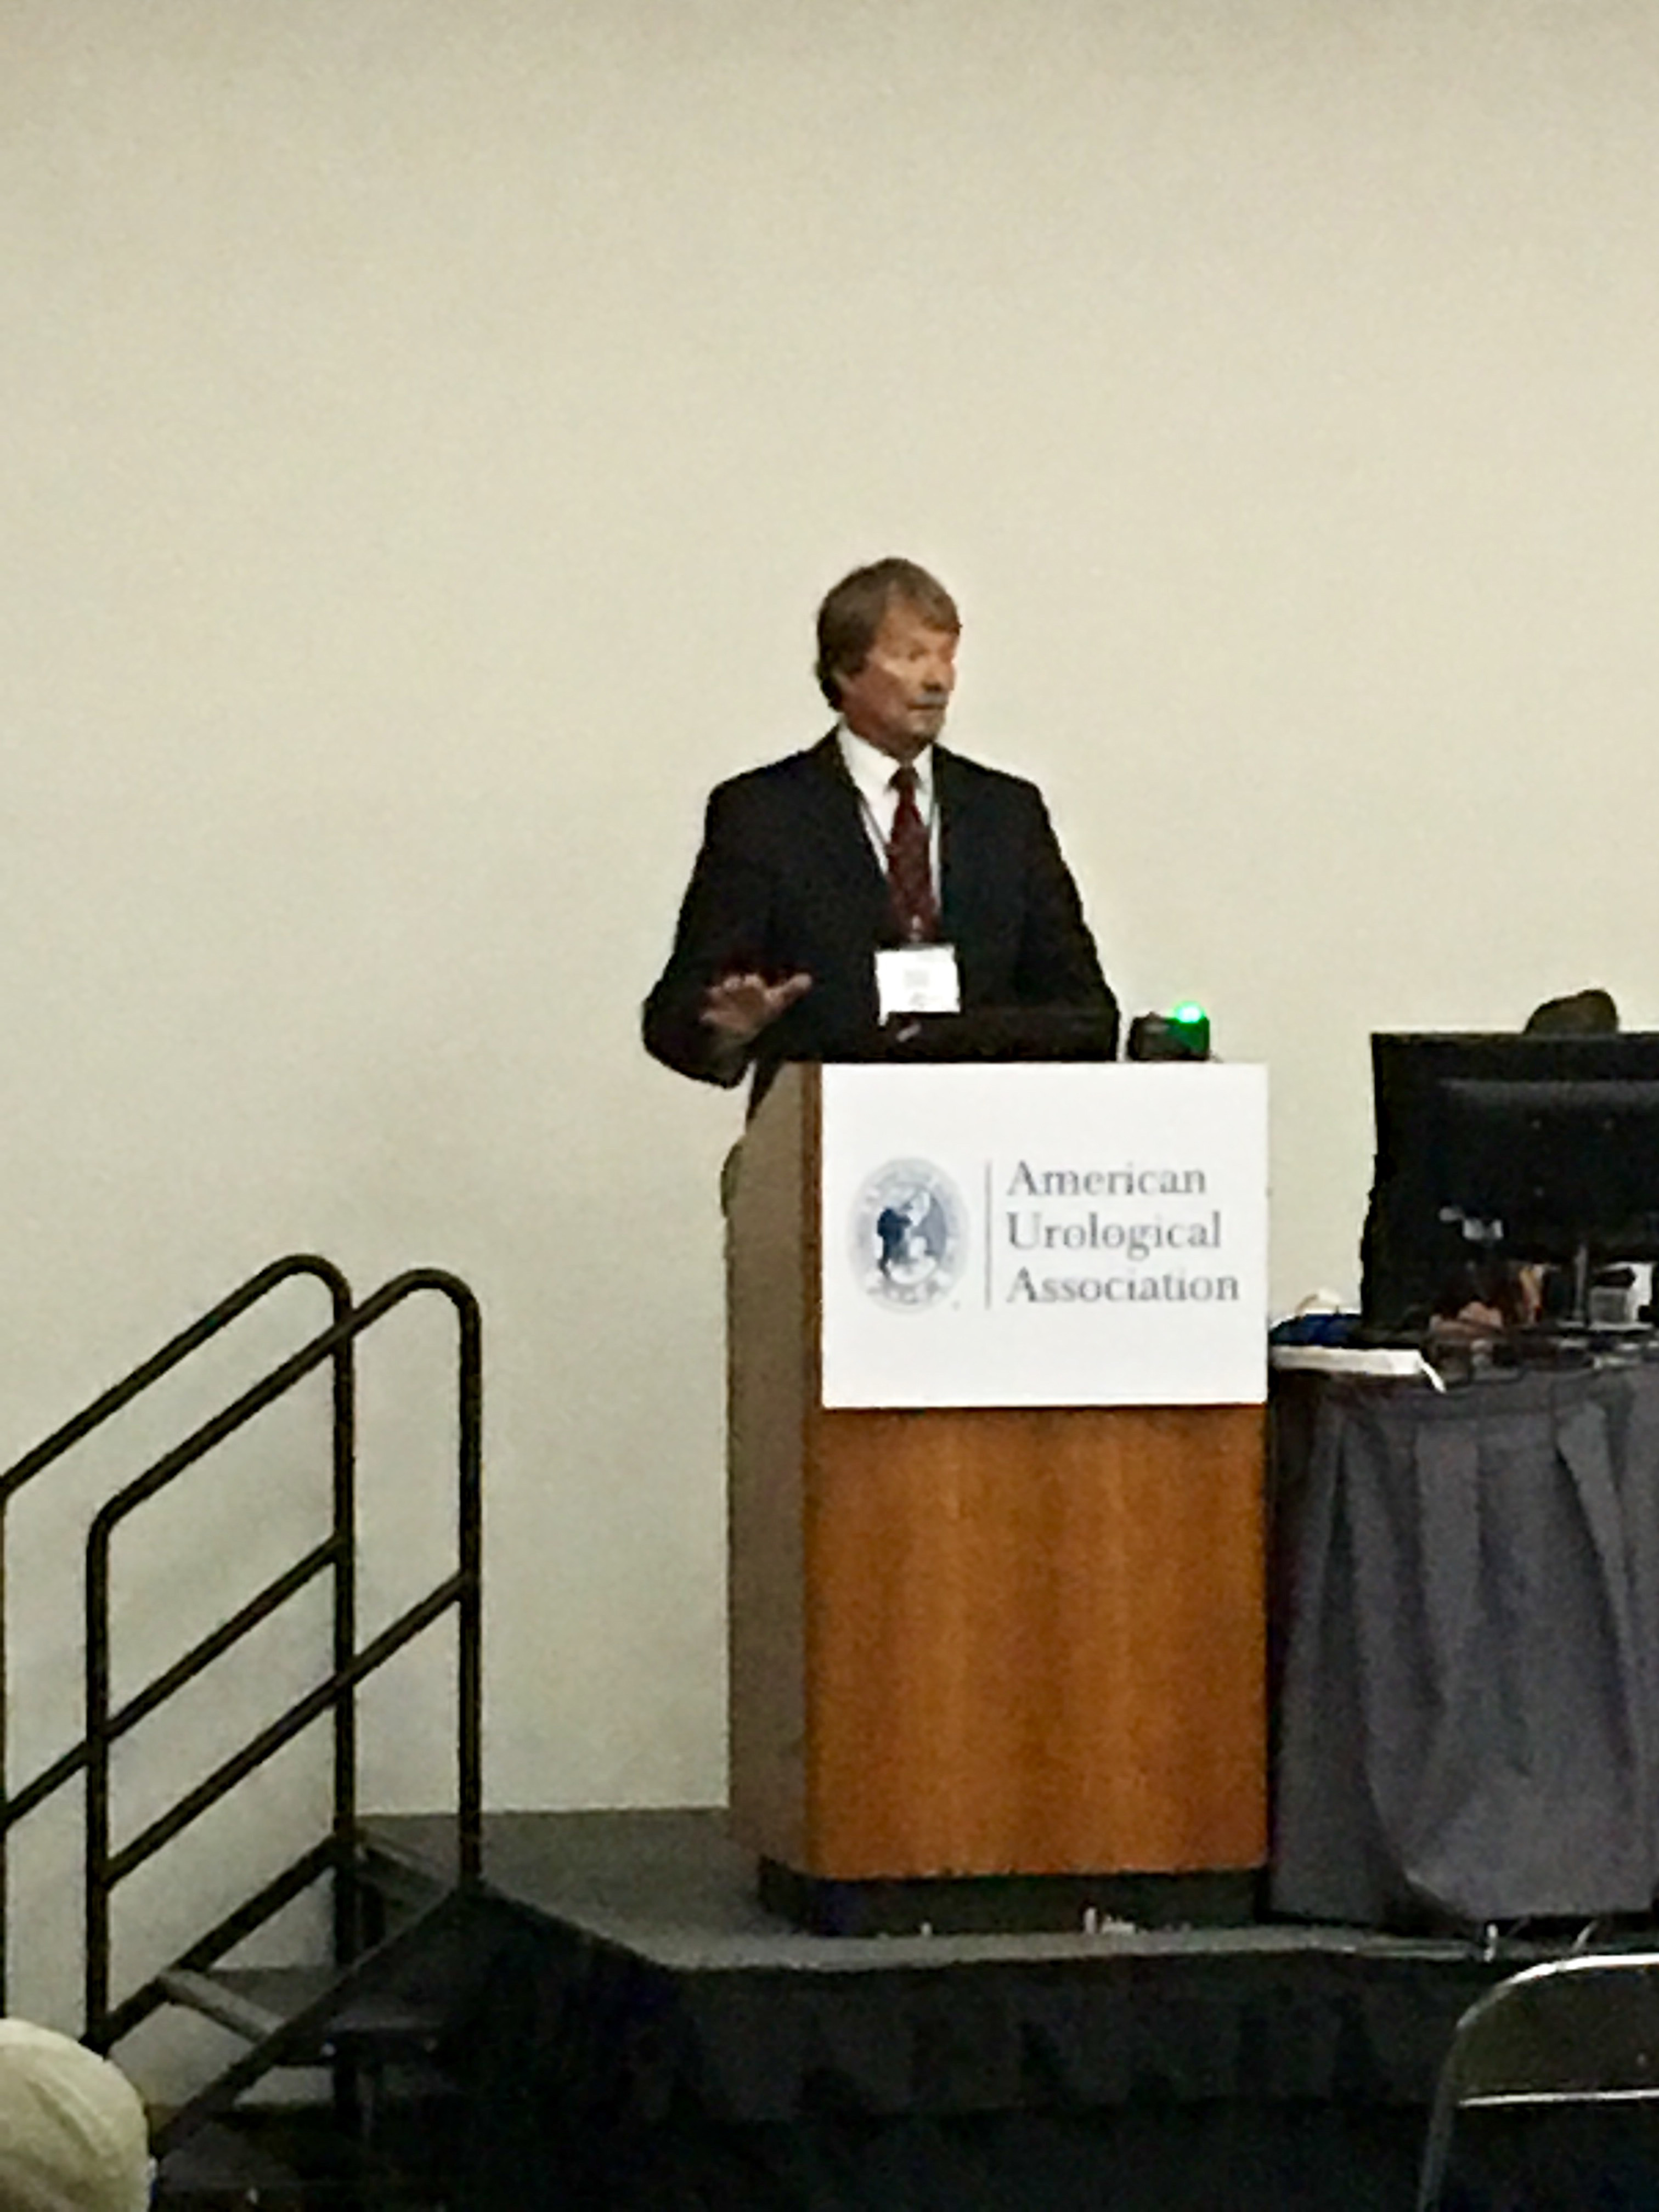 Dr Chris Payne at the 2016 AUA Conference in SD